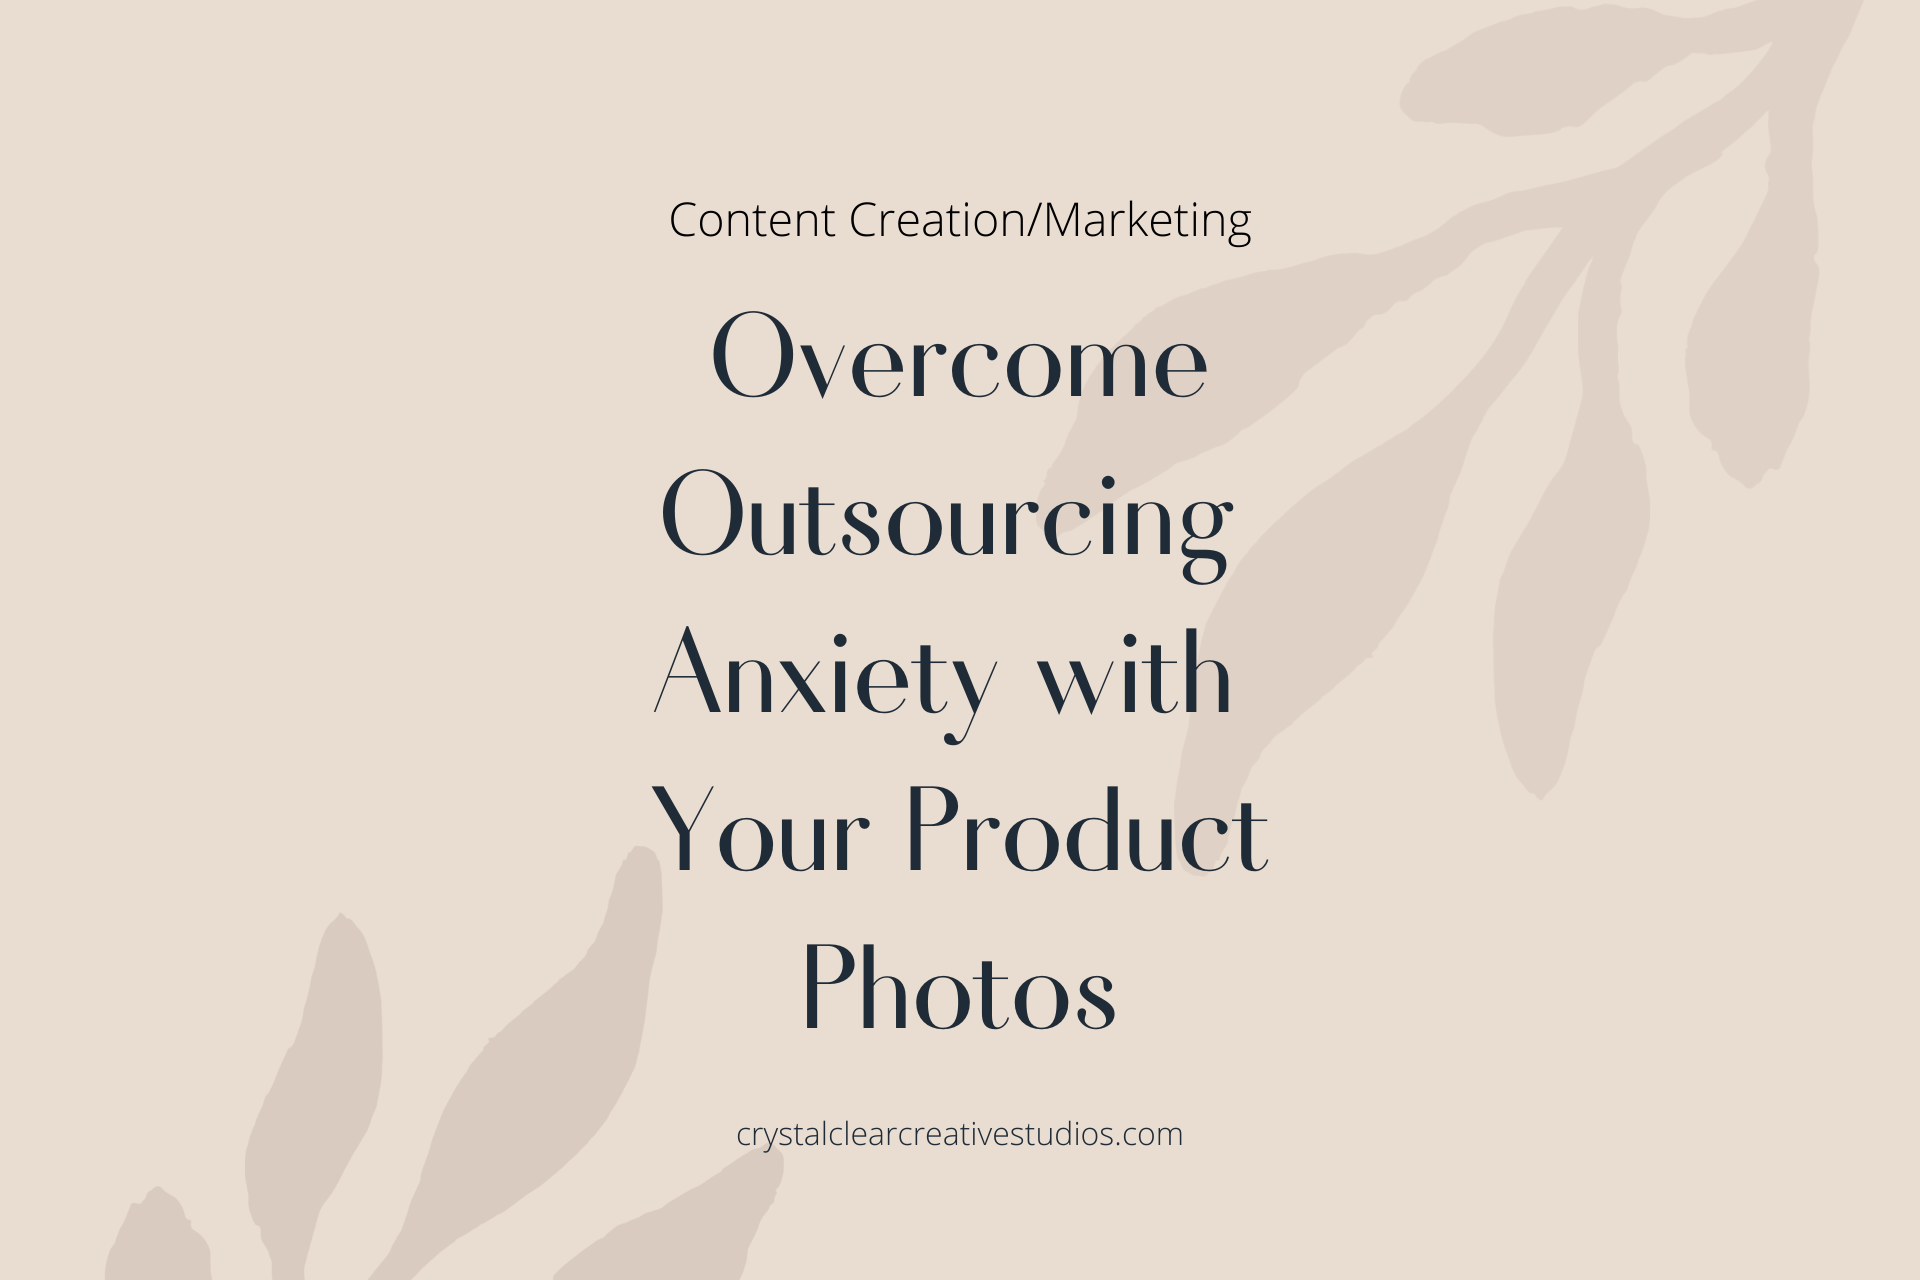 Overcome Outsourcing Anxiety with Your Product Photos